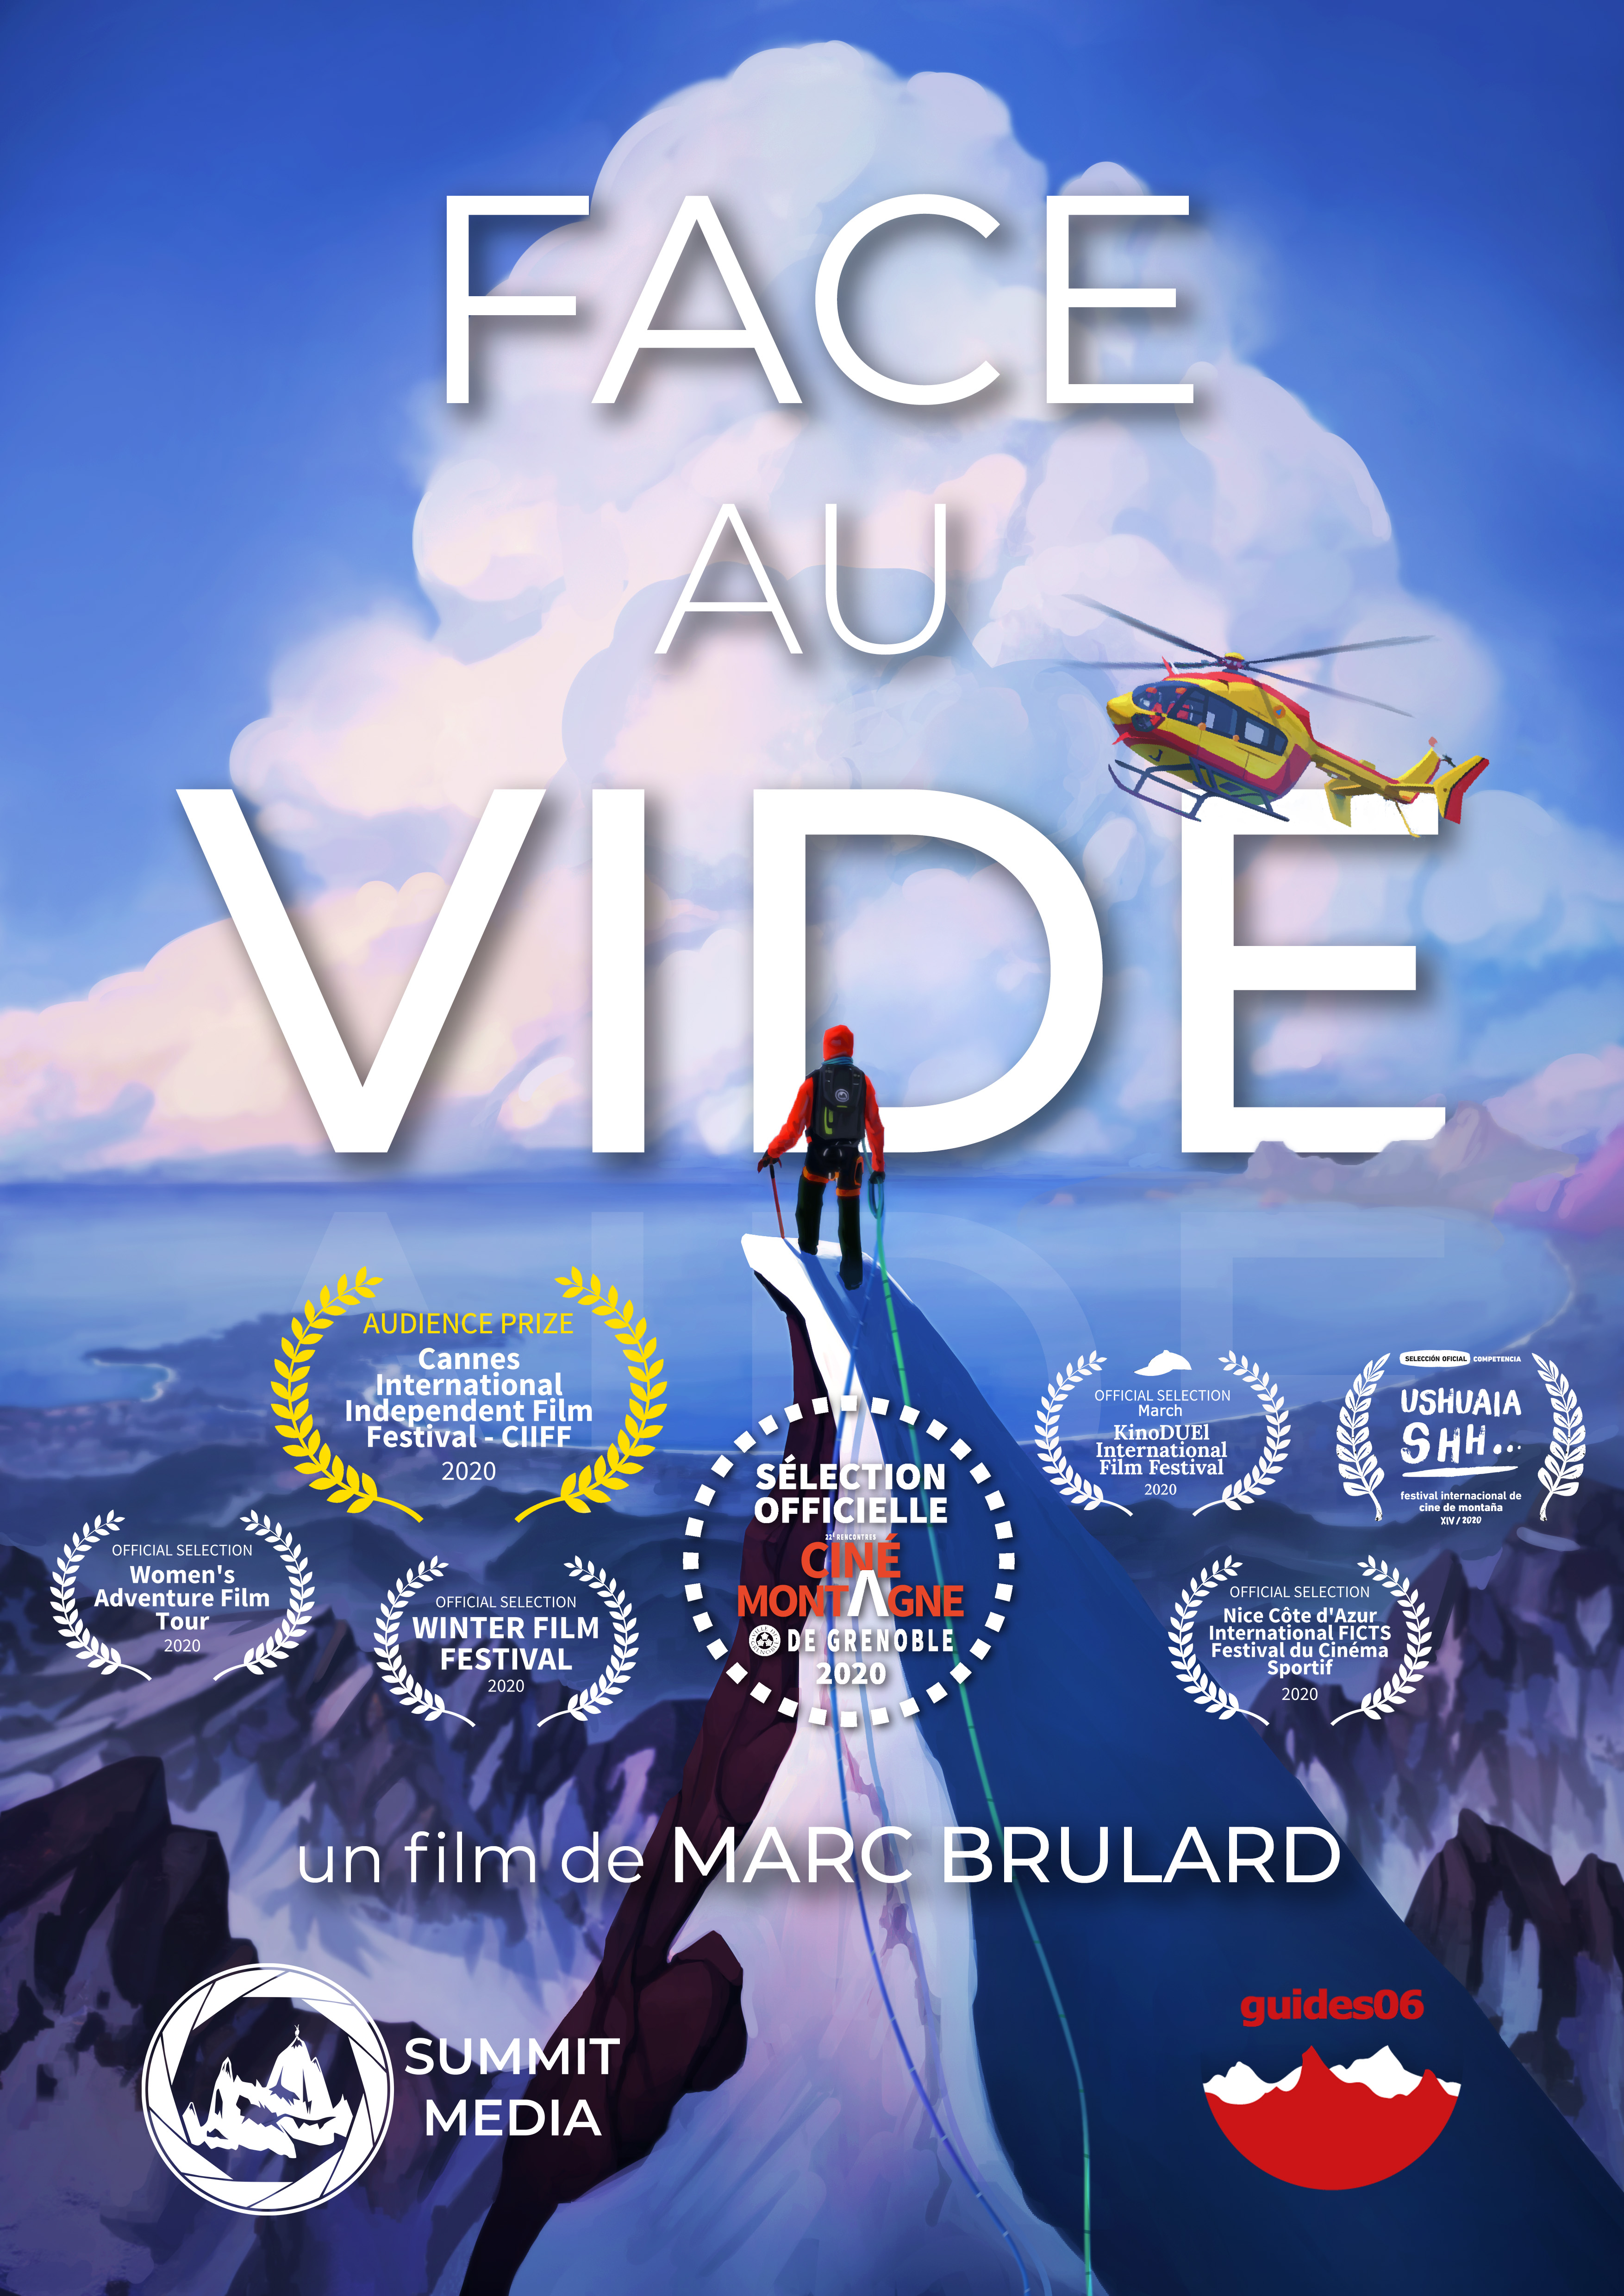 Face au Vide hd on soap2day